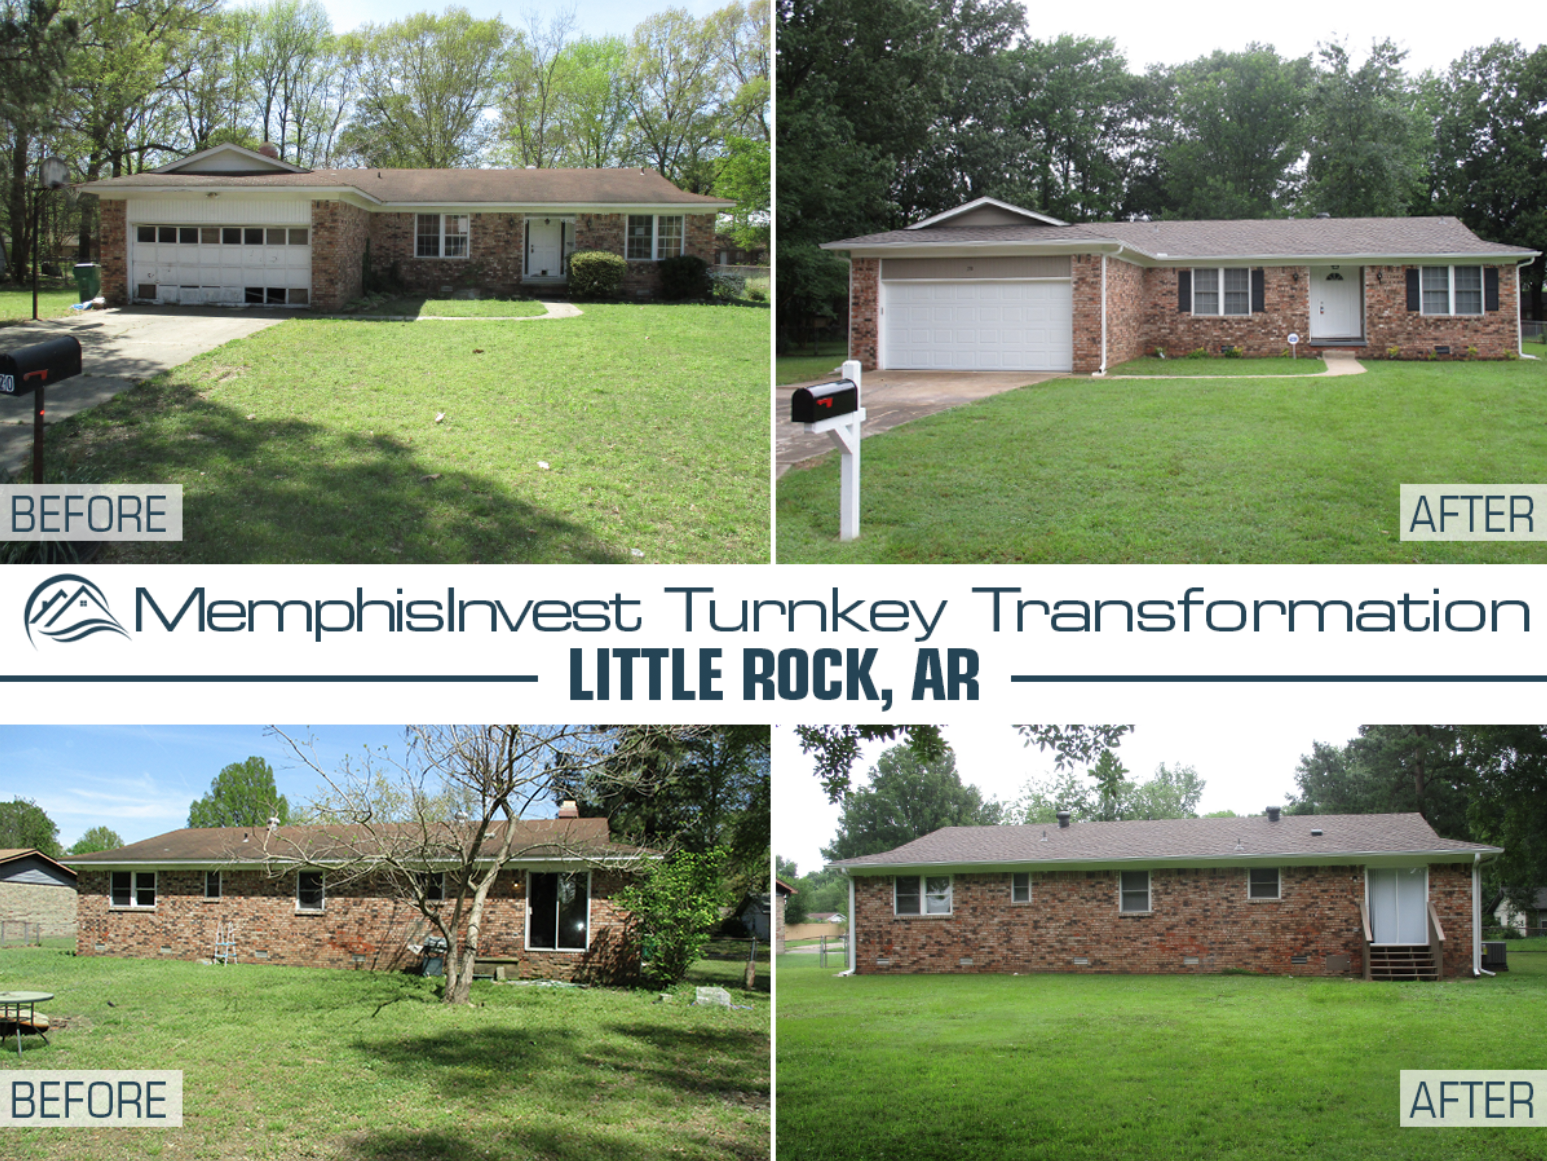 LittleRock_Turnkey_Renovation_Before_After